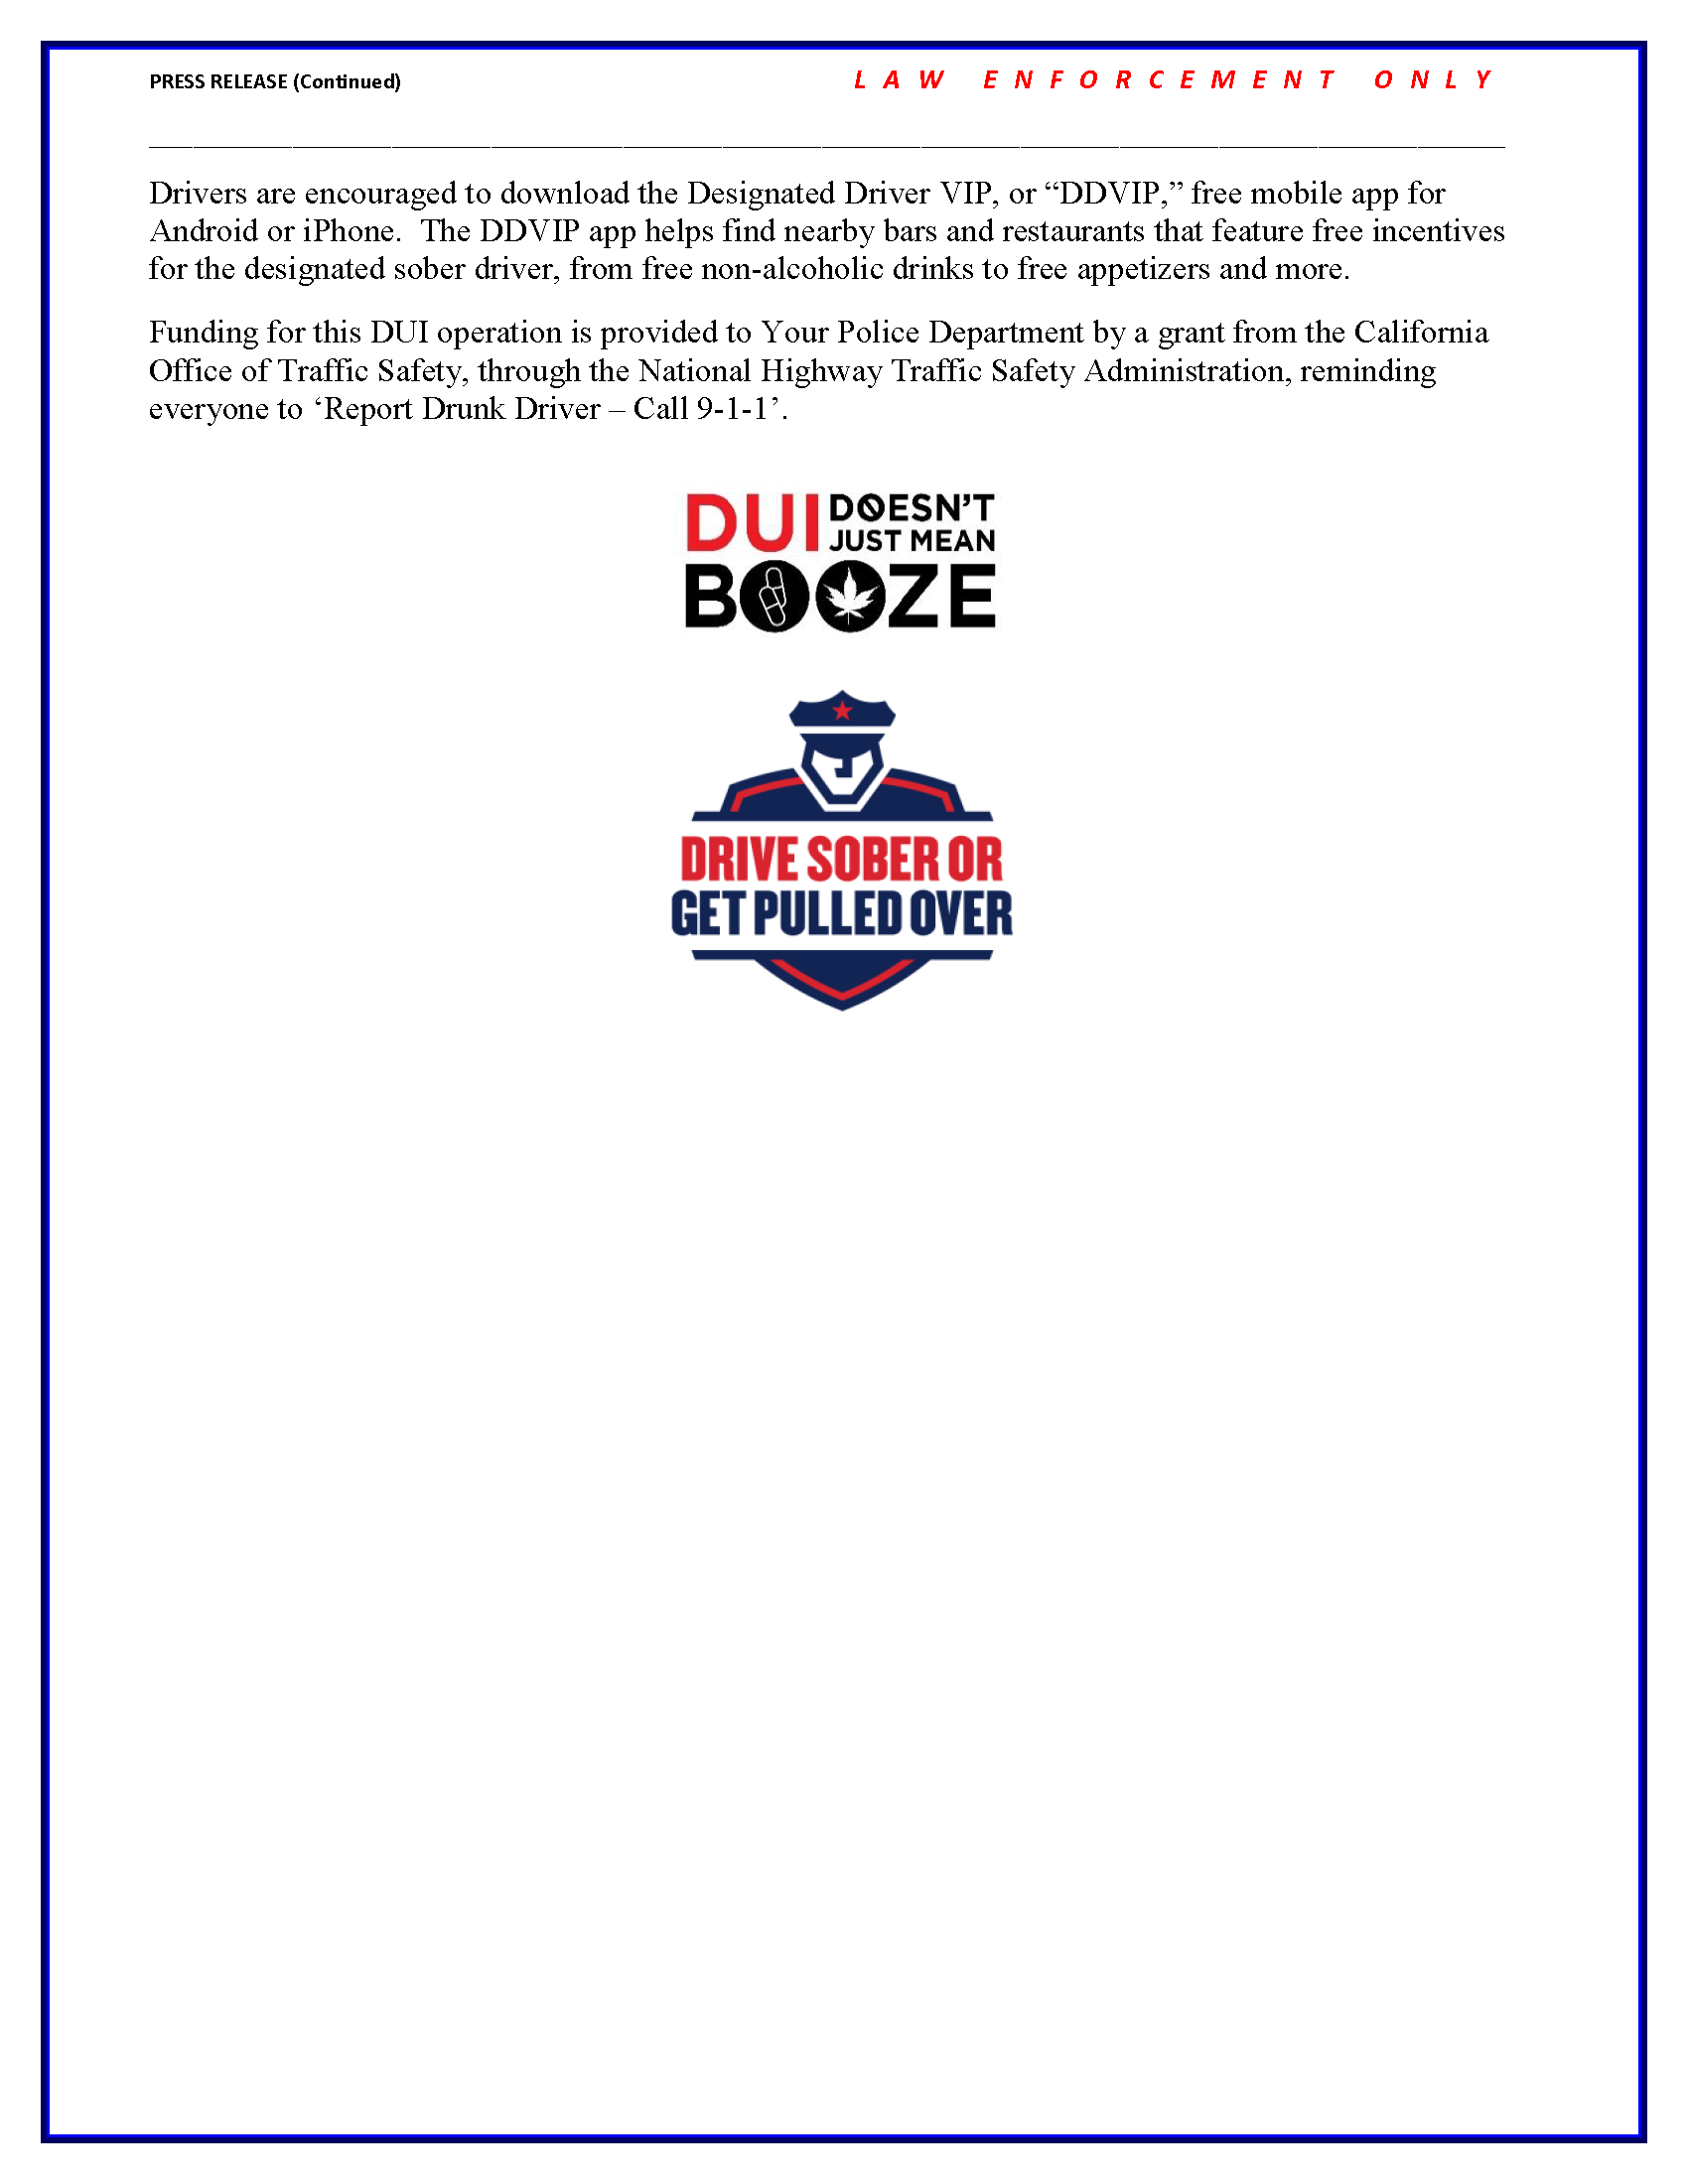 Press Release Winter DUI Campaign 2017_Page_2.png